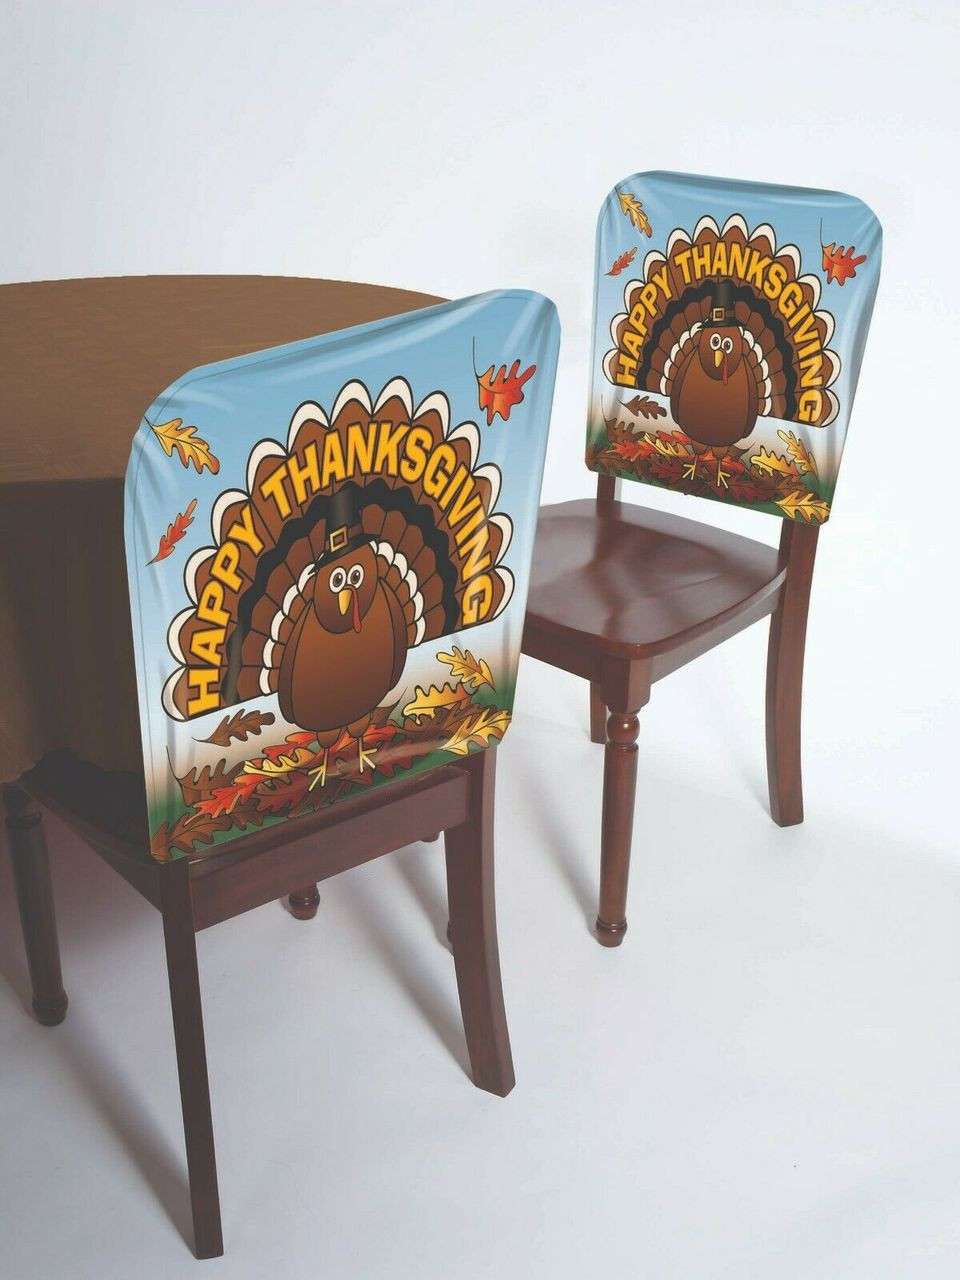 Strange Forum Novelties Thanksgiving Turkey Vinyl Chair Covers Holiday Decorations 76117 Caraccident5 Cool Chair Designs And Ideas Caraccident5Info